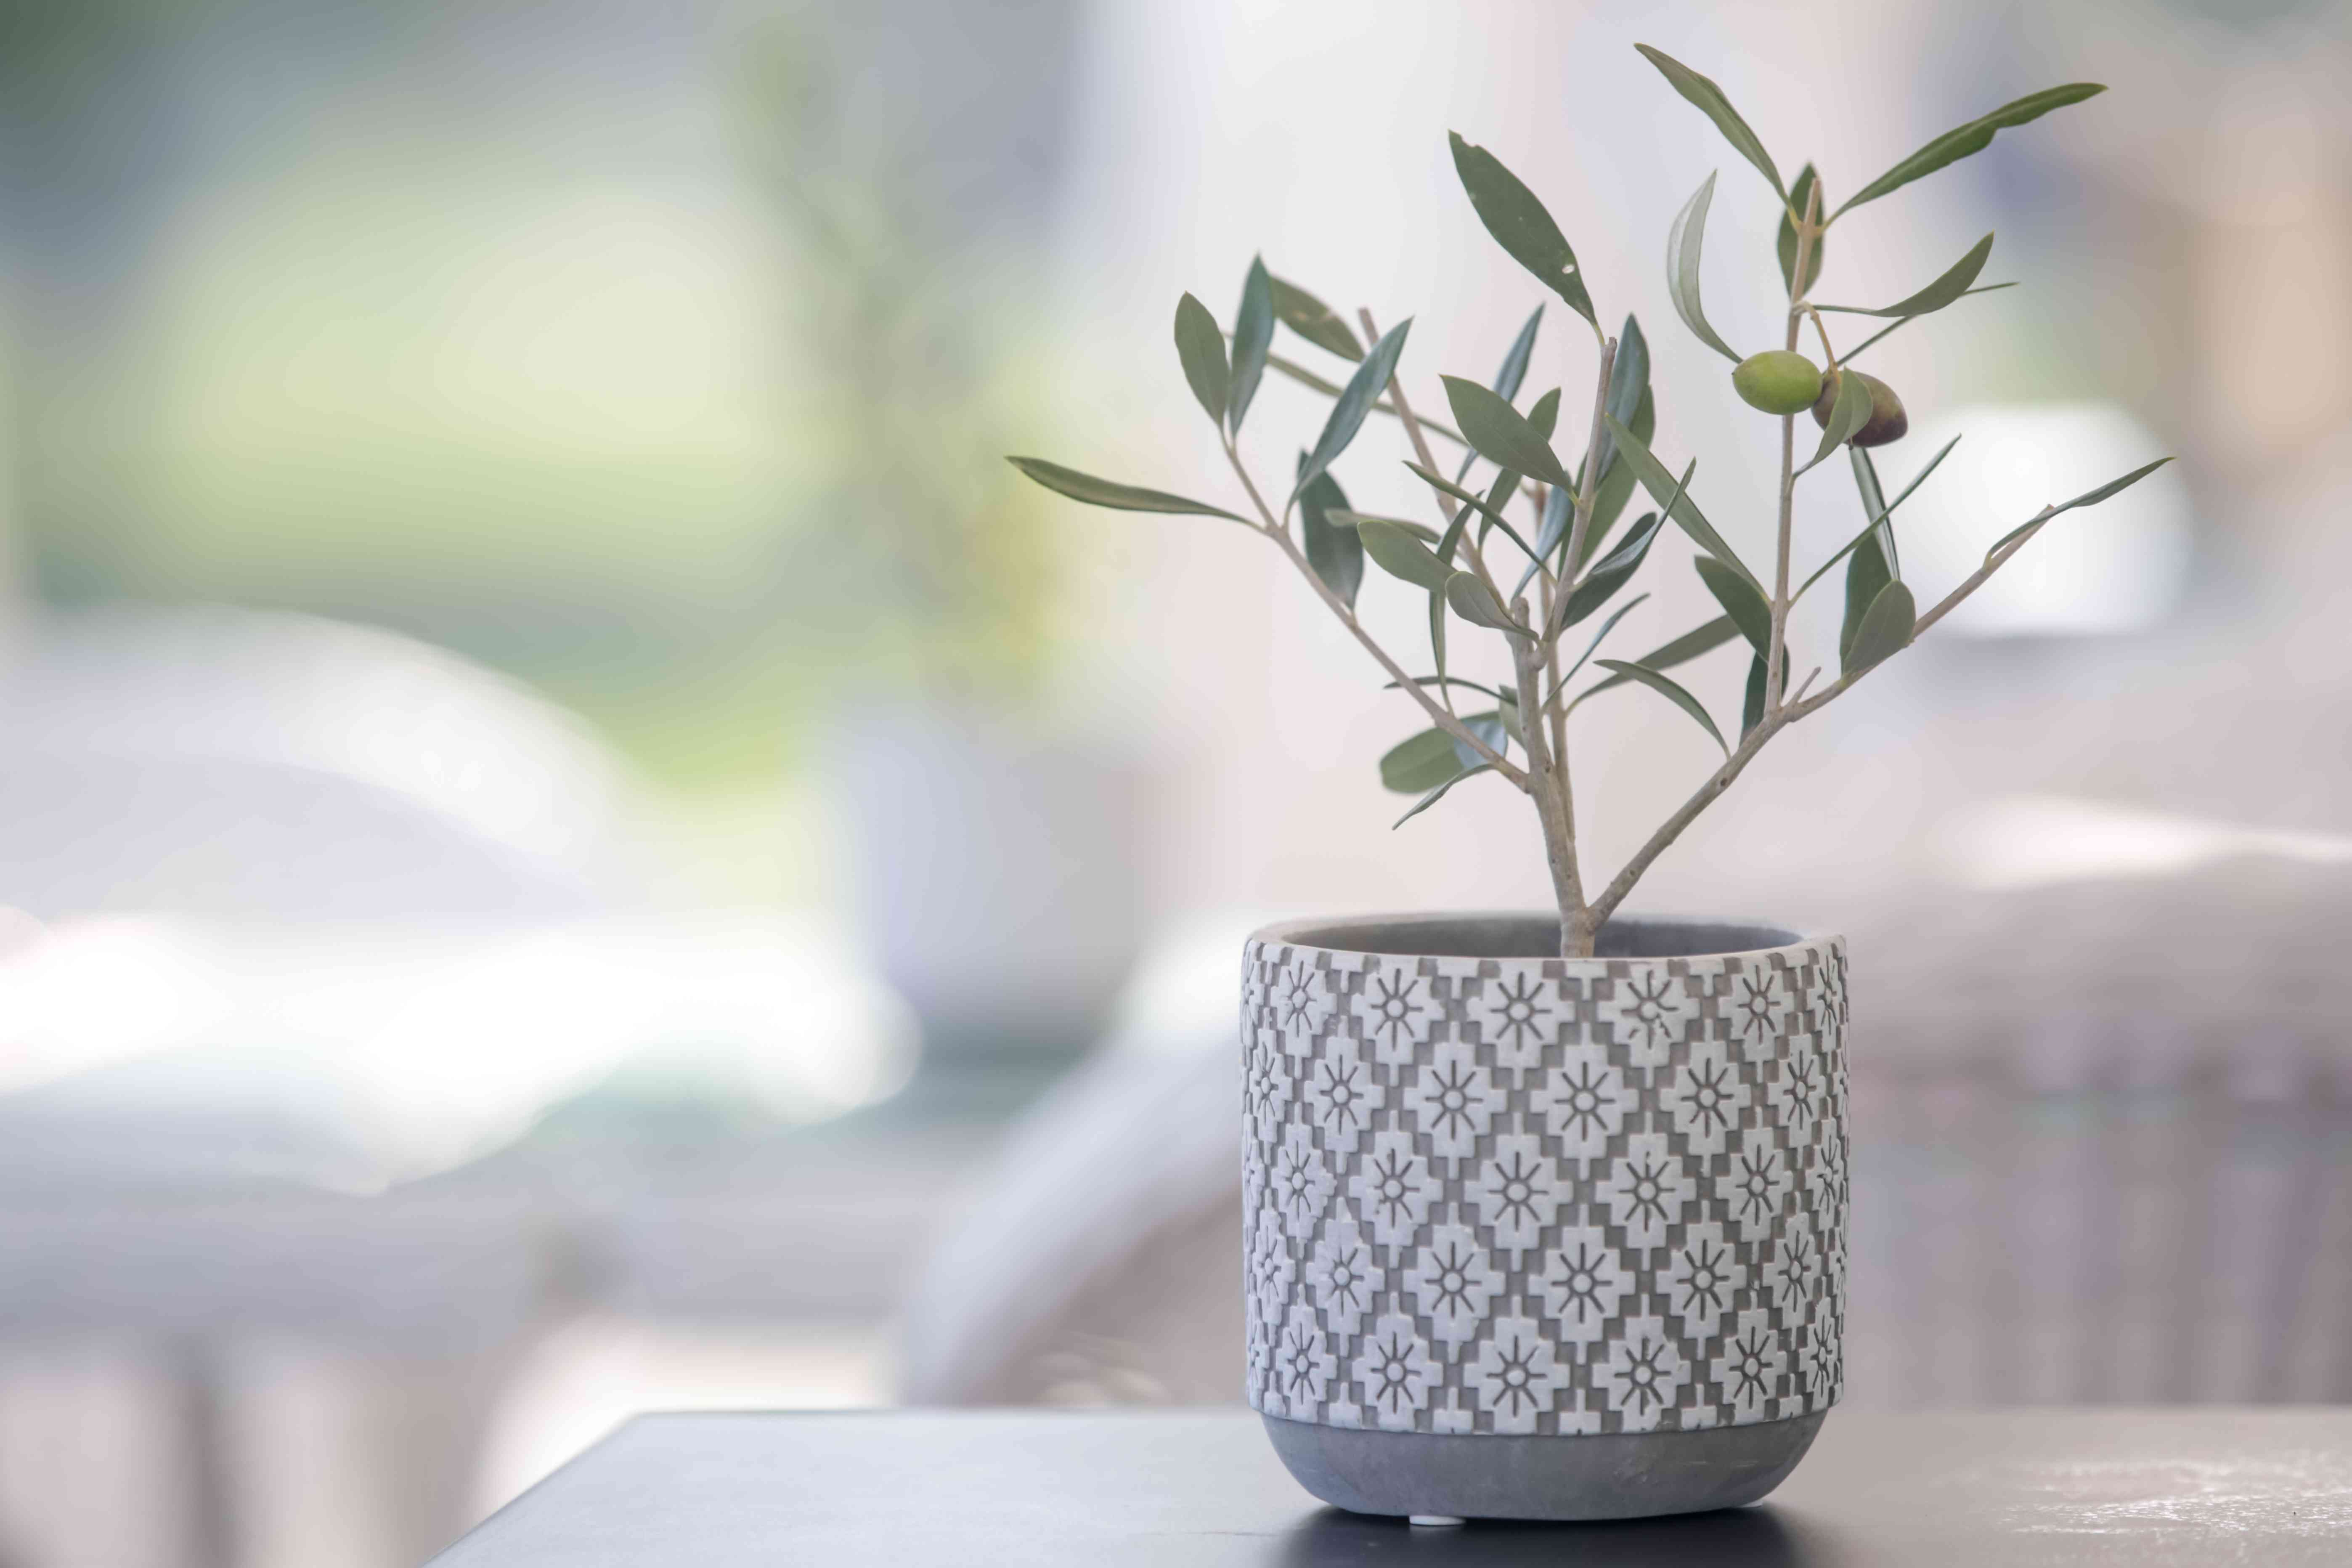 An olive tree in a small pot.